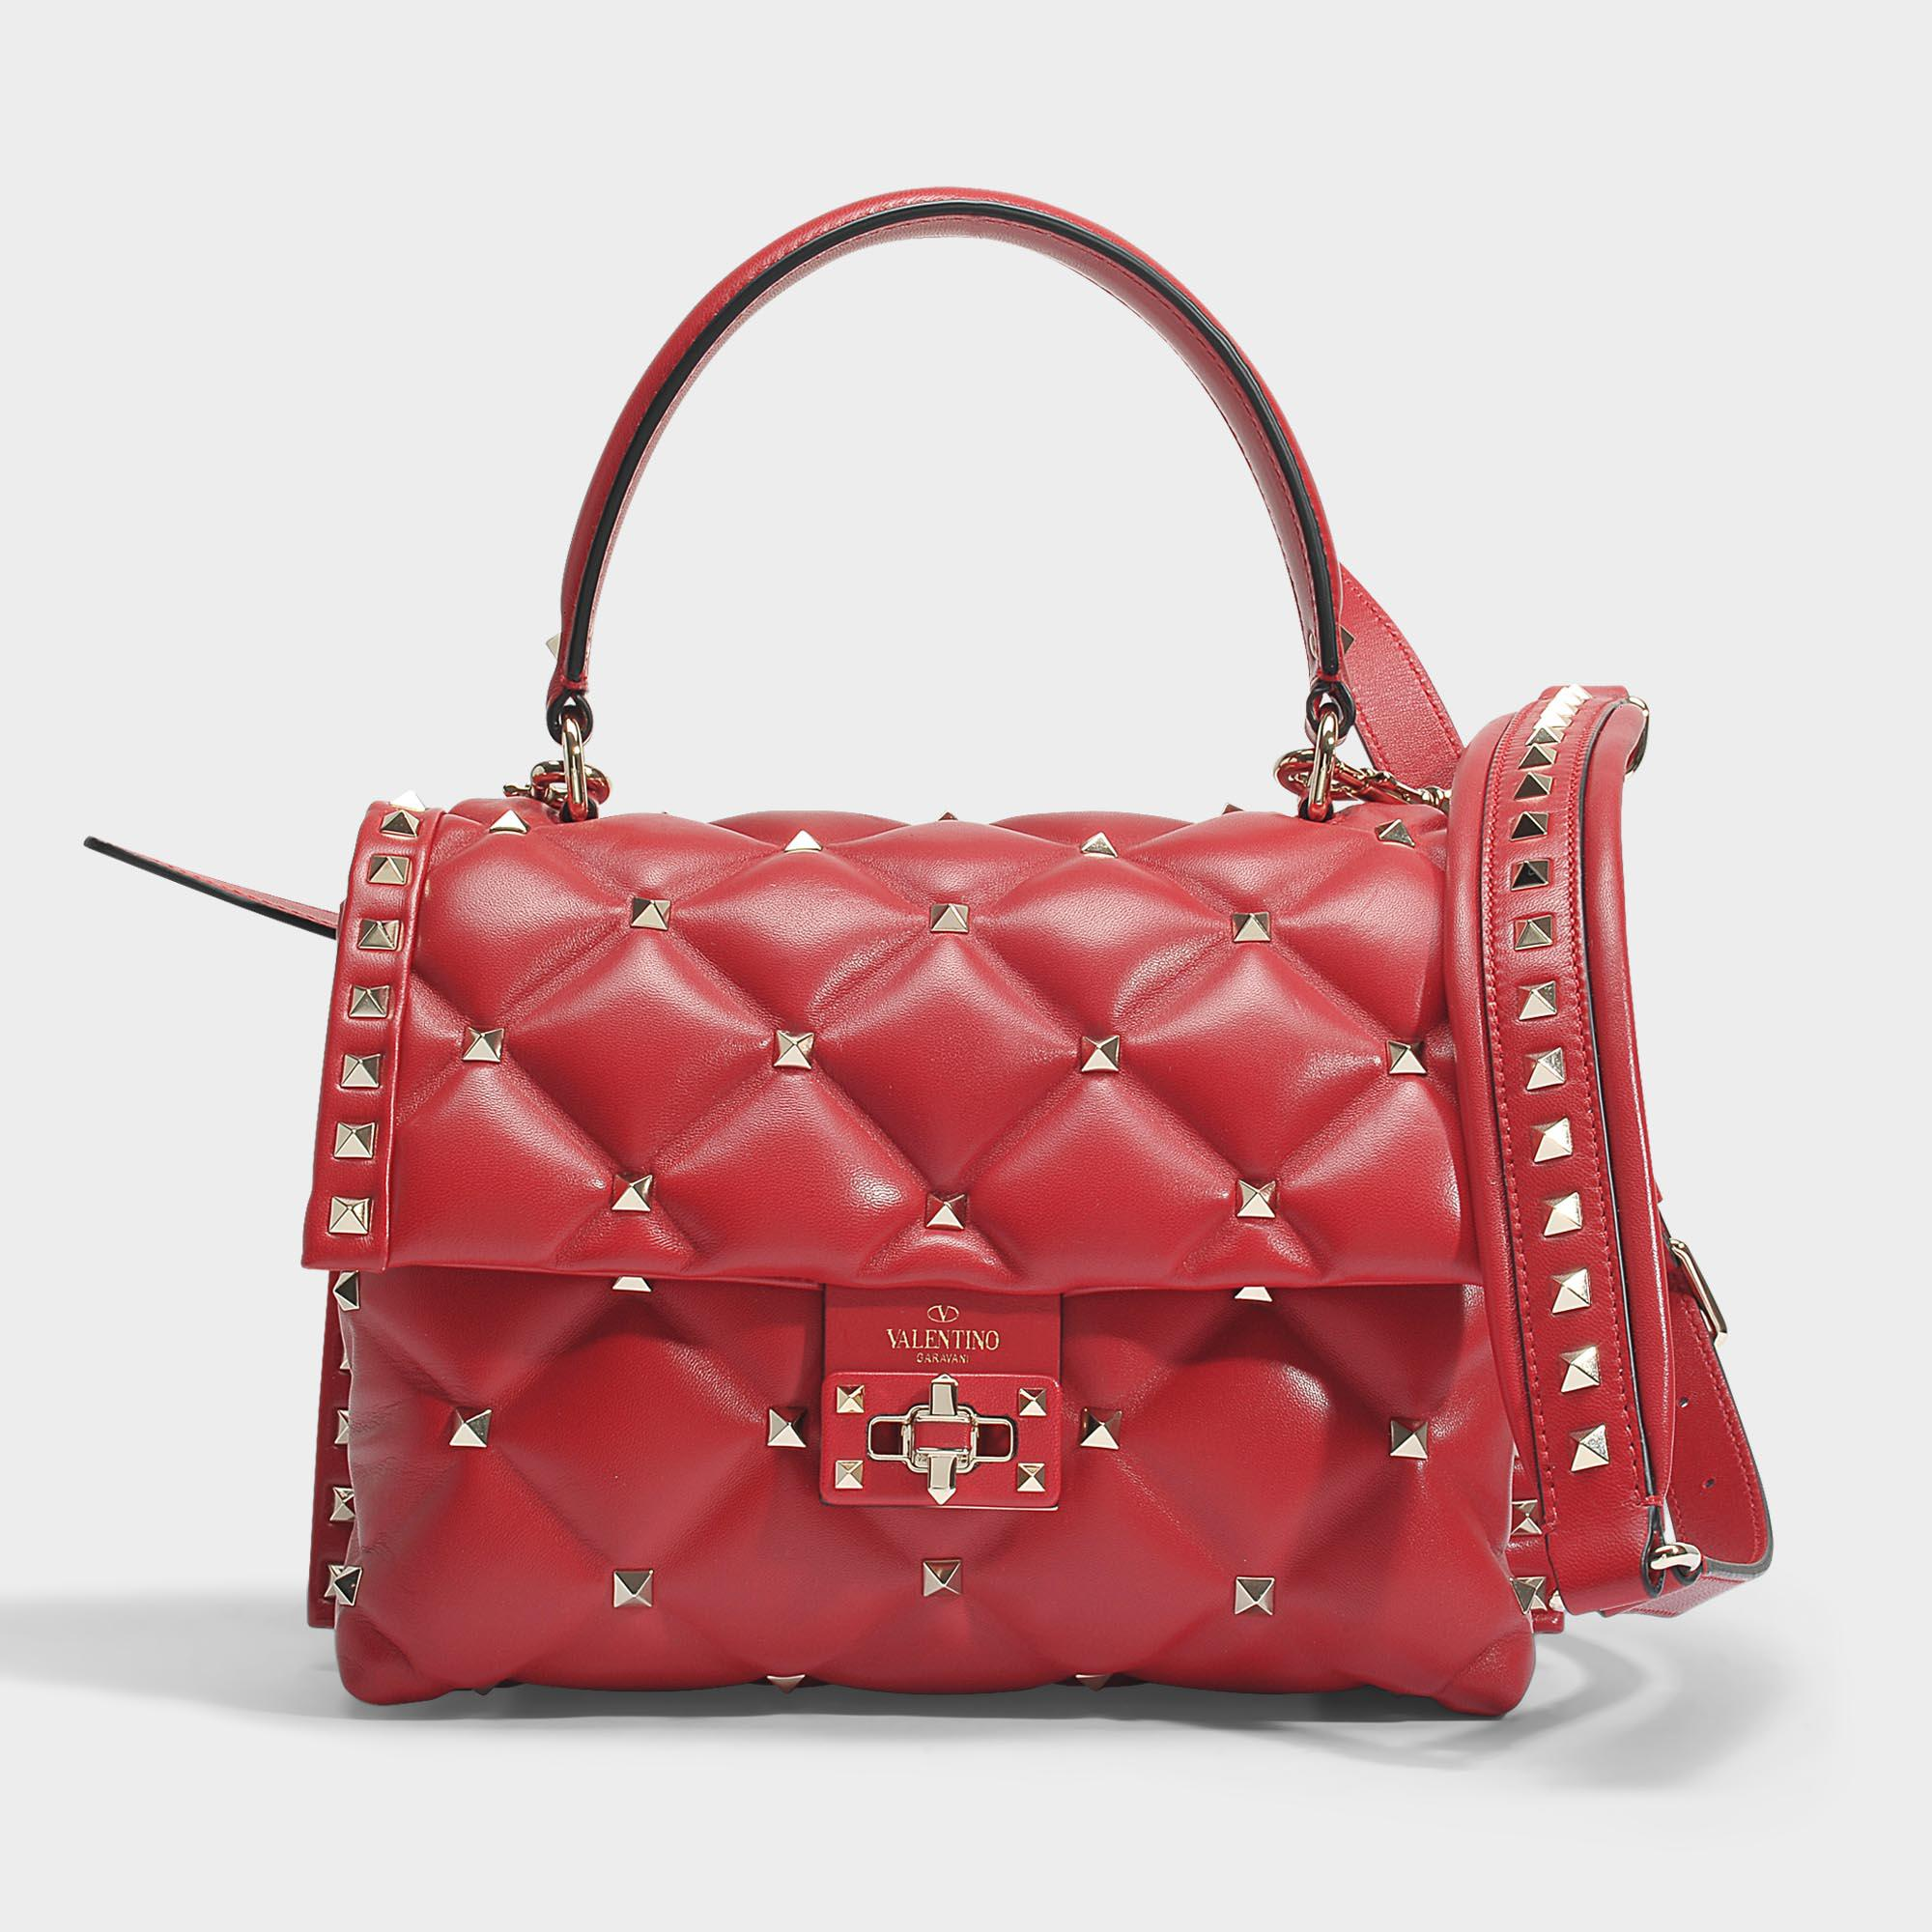 Candy Lock Single Handle Bag in Dusty Rose and Red Two-Tone Calf Valentino 1U8Rn